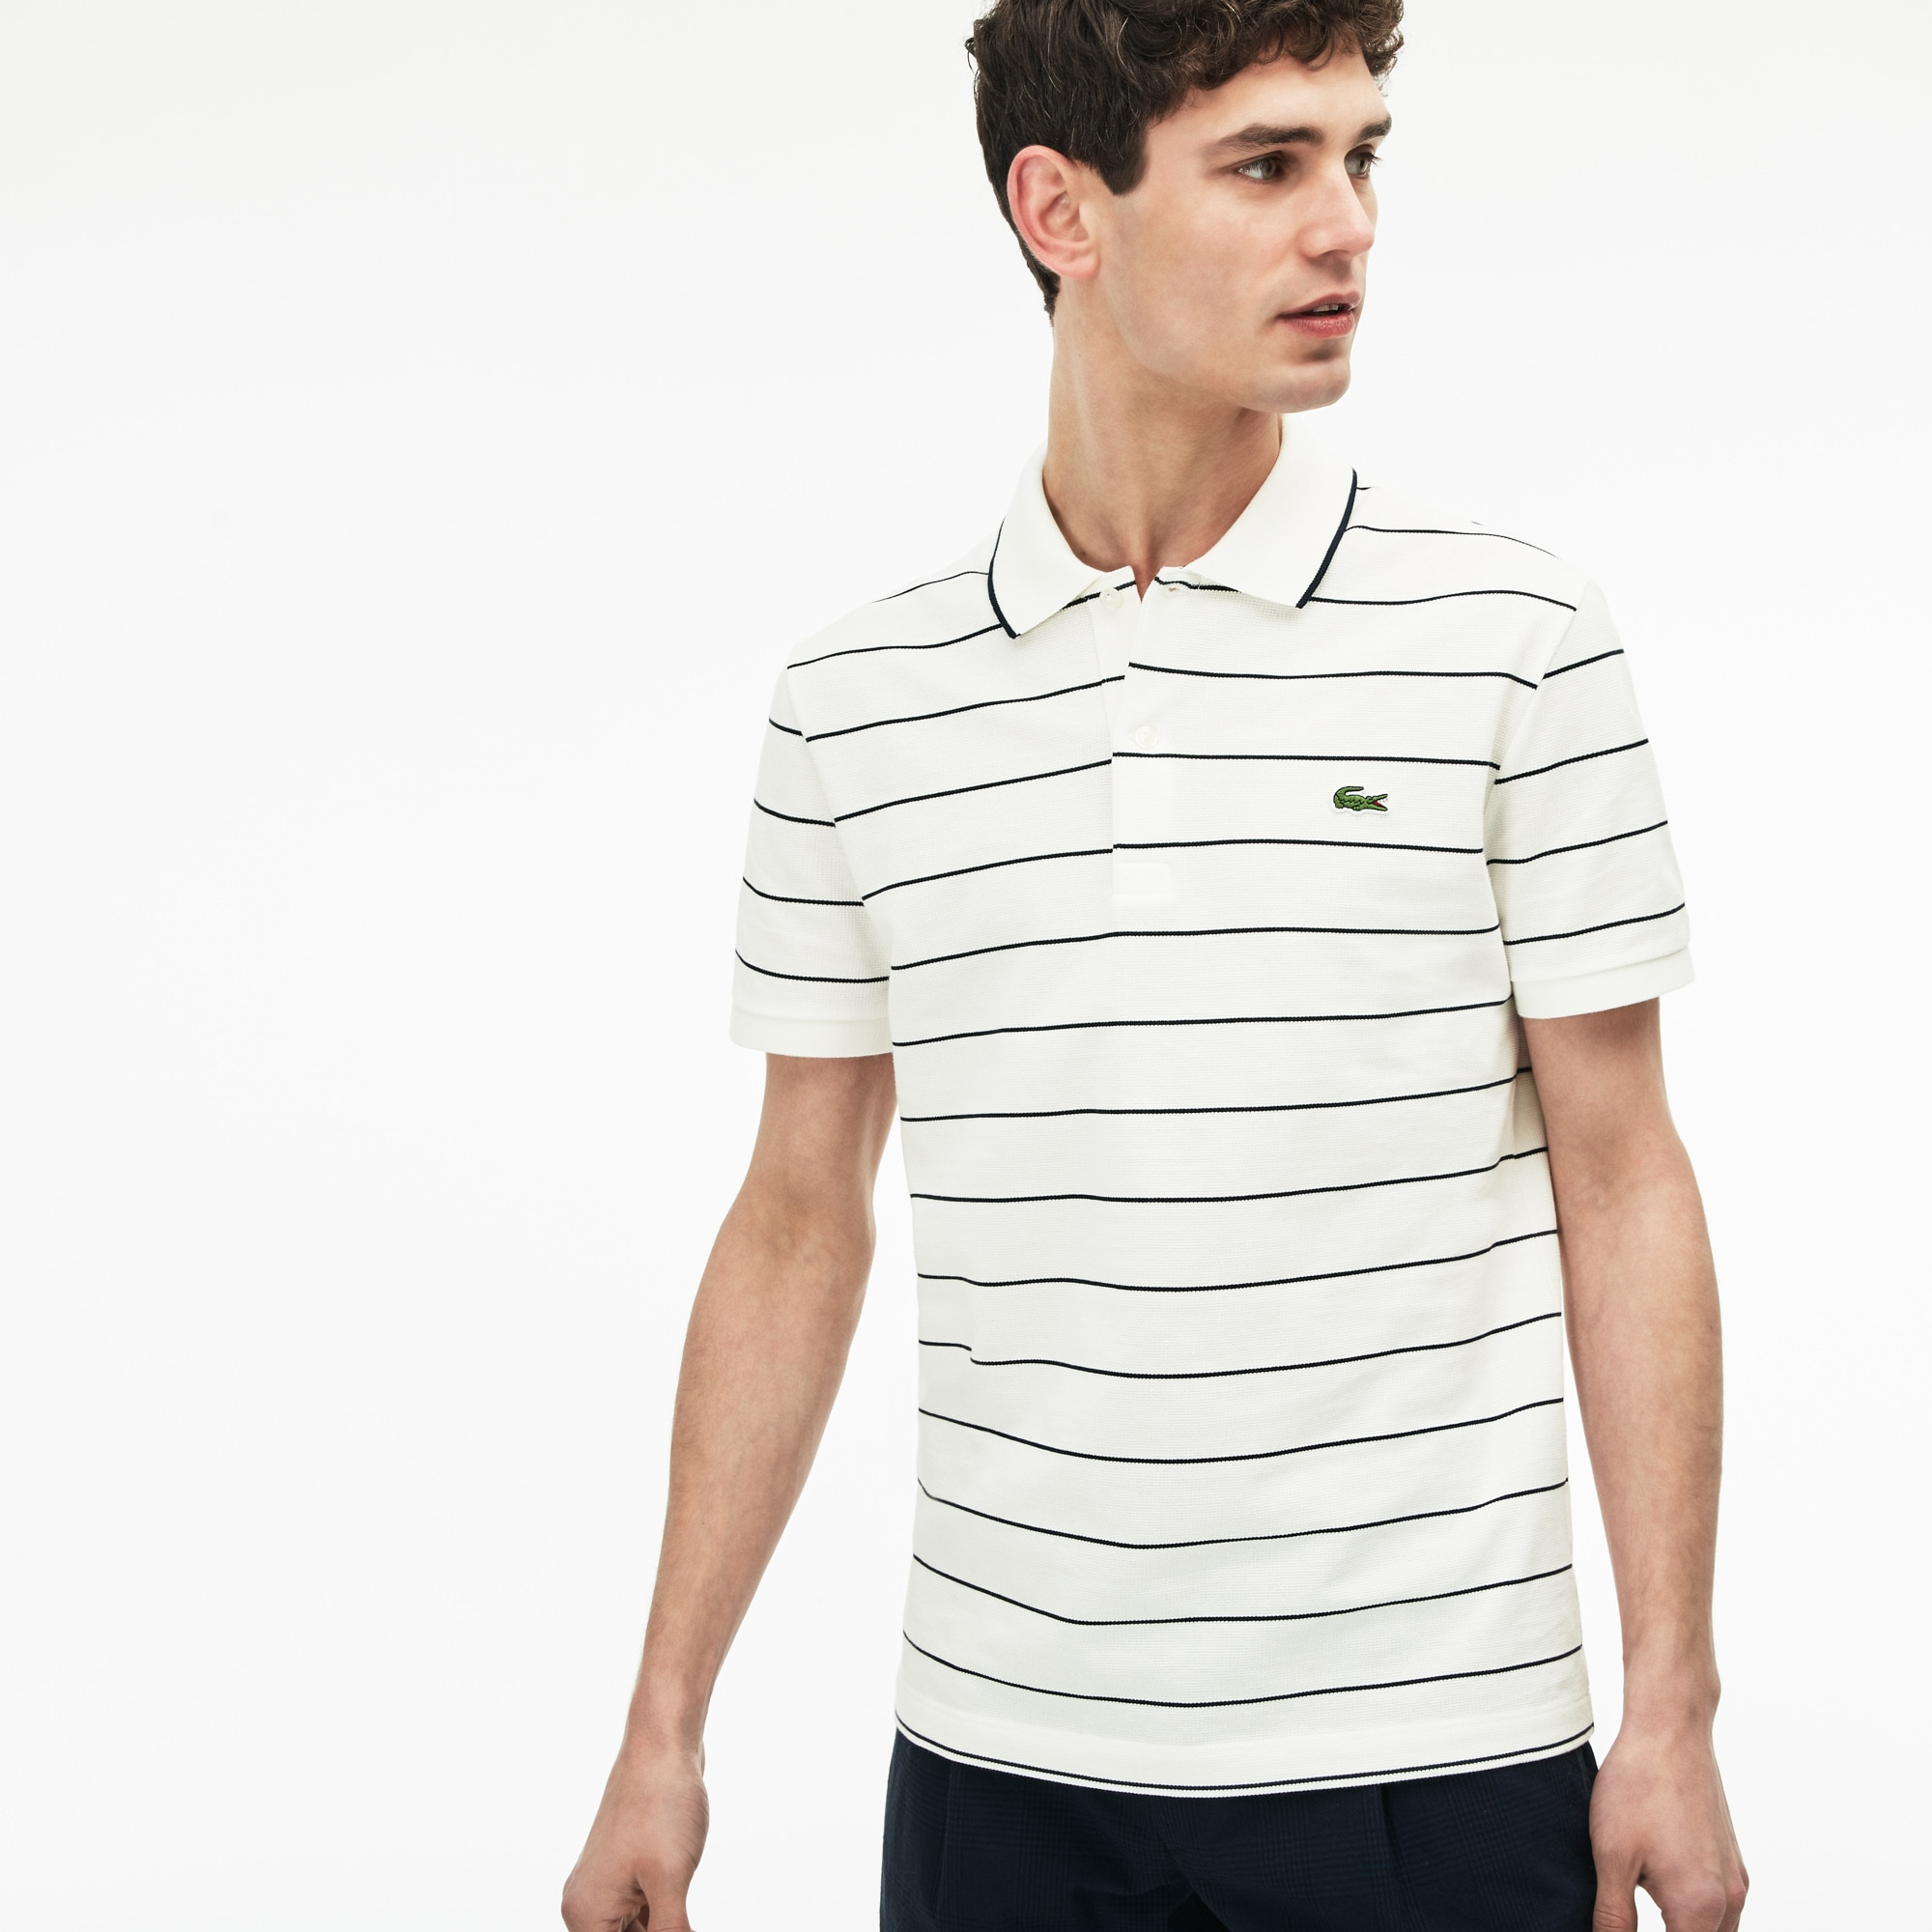 Men's Slim Fit Piped Striped Knit Polo